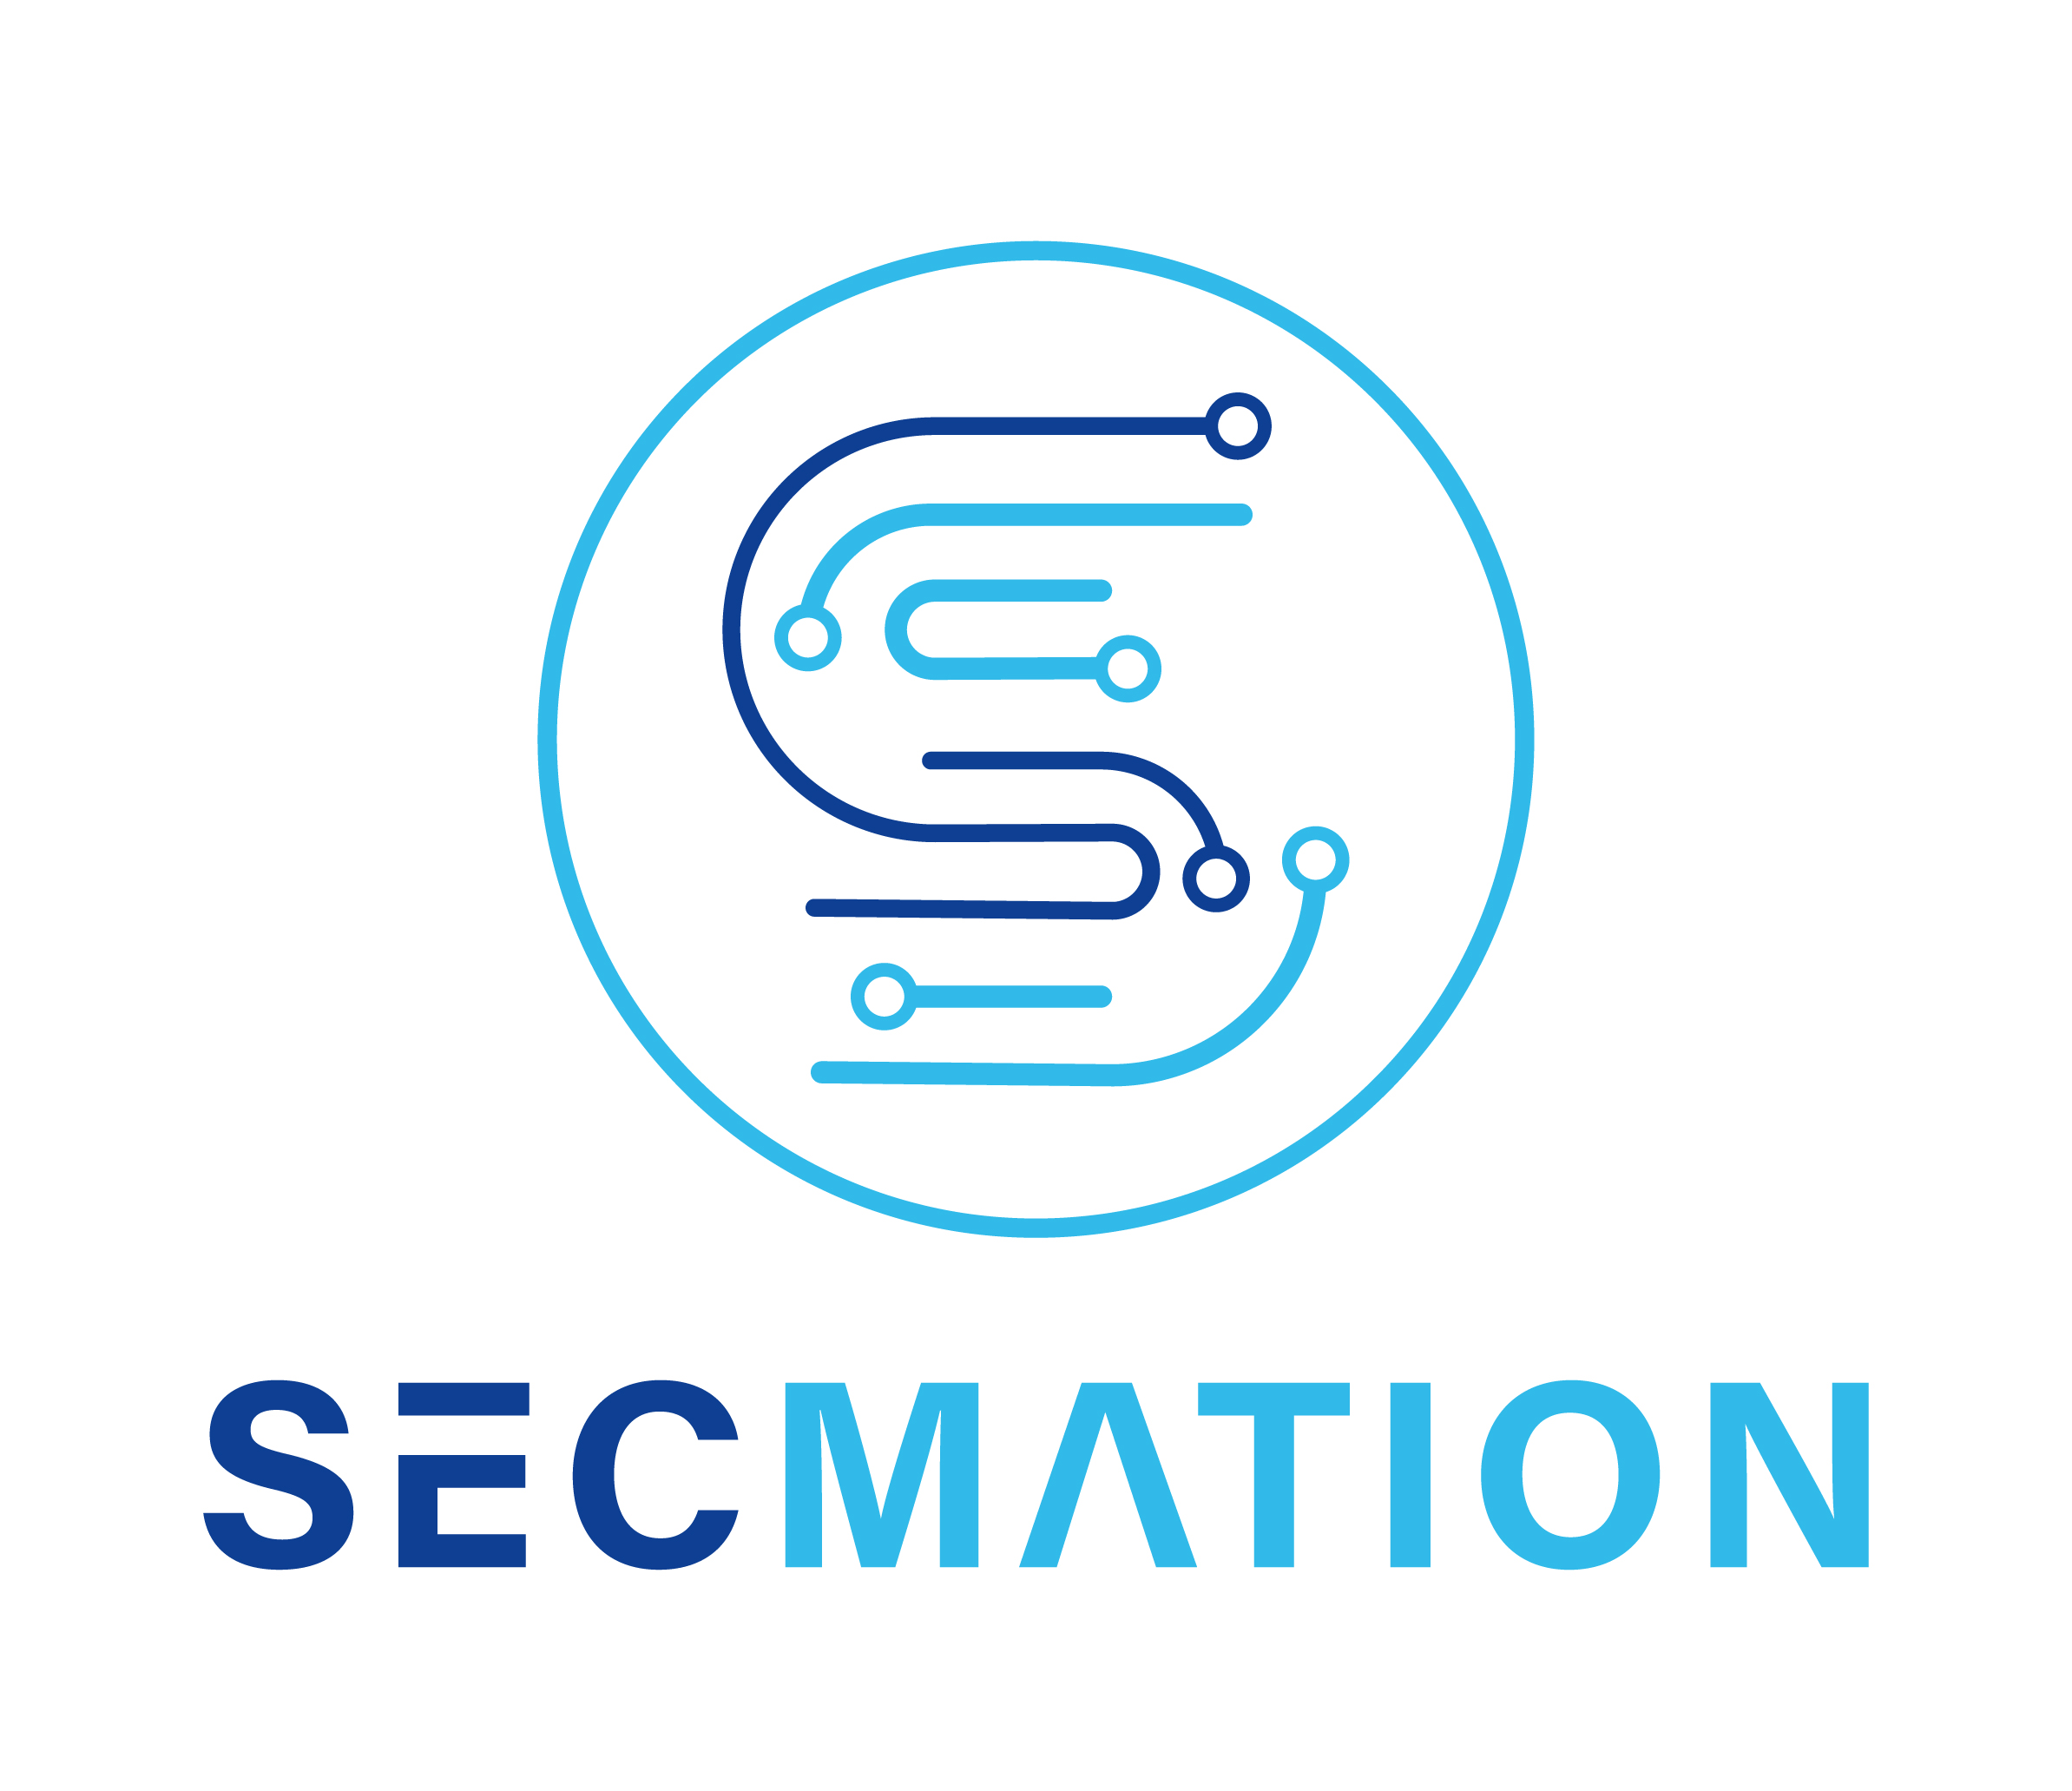 SECMATION FINAL new-01 (003)